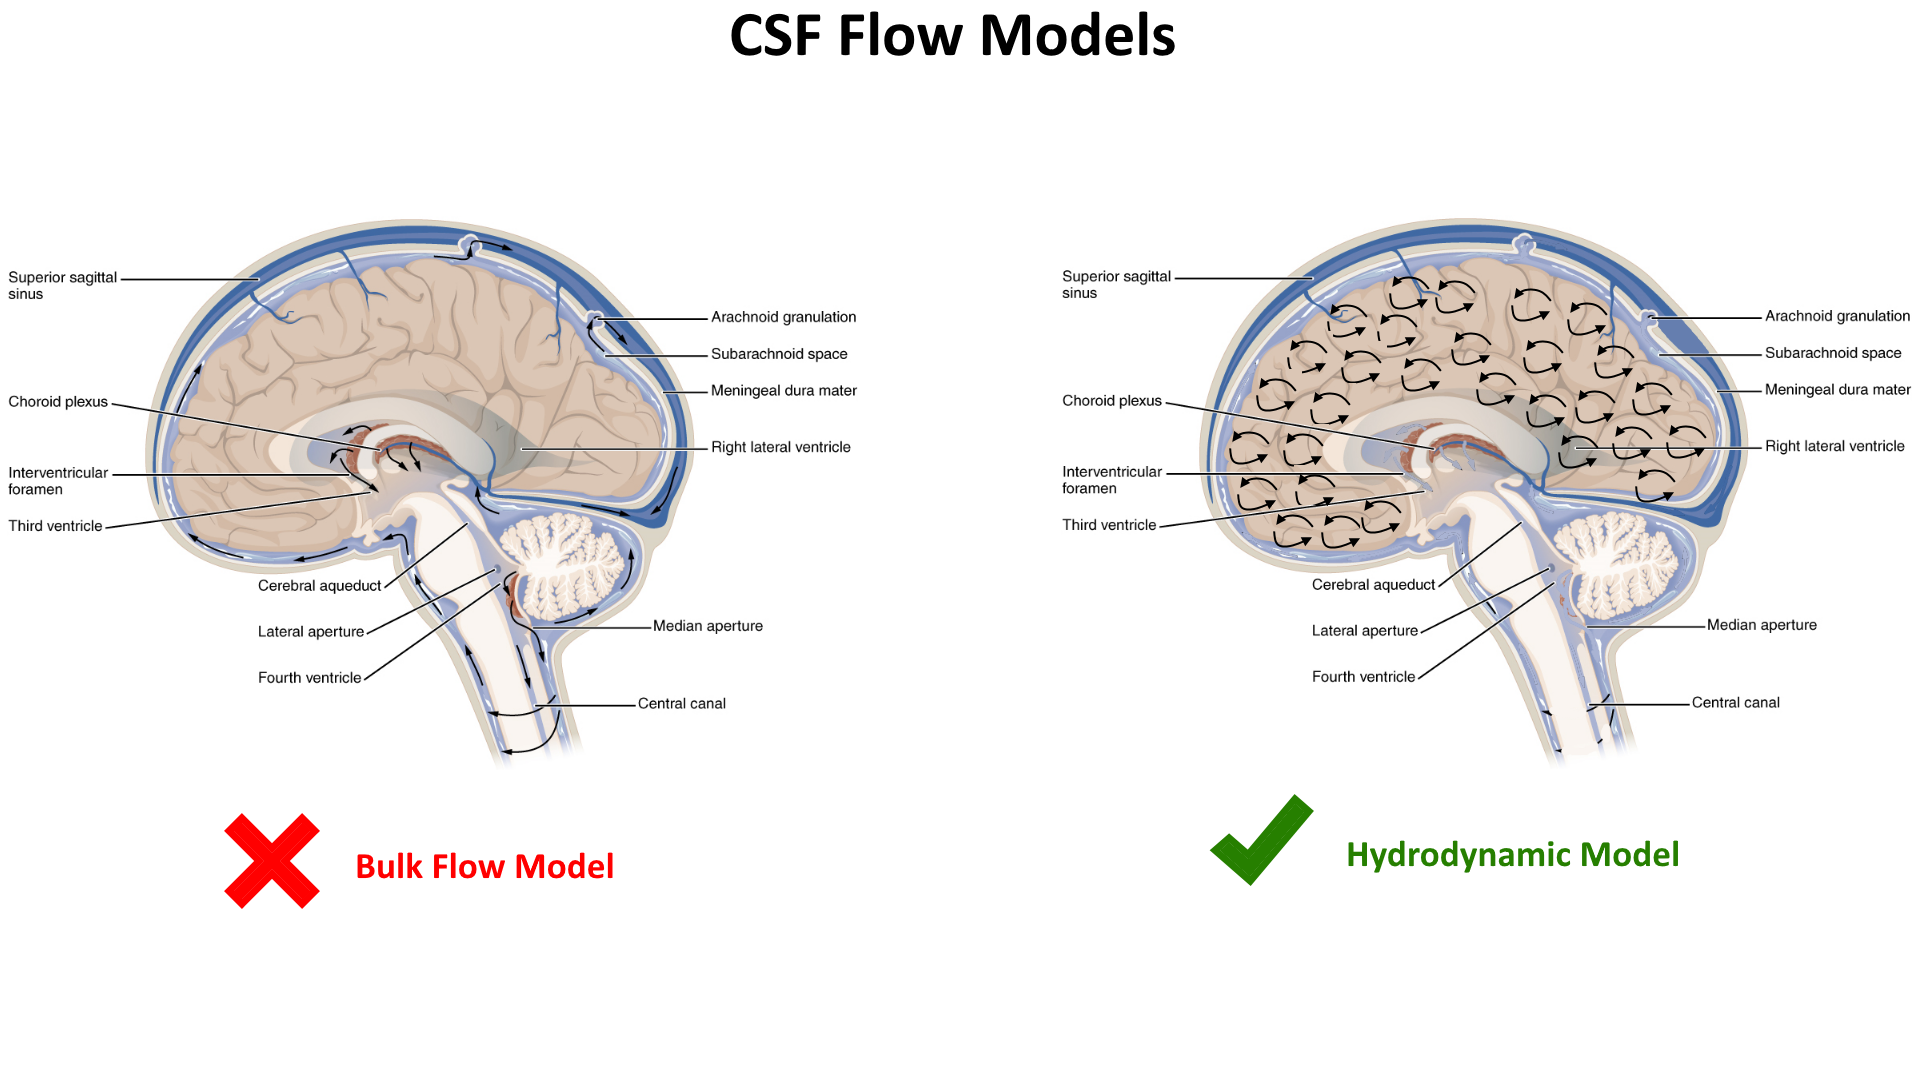 bulk flow csf vs hydrodynamic csf